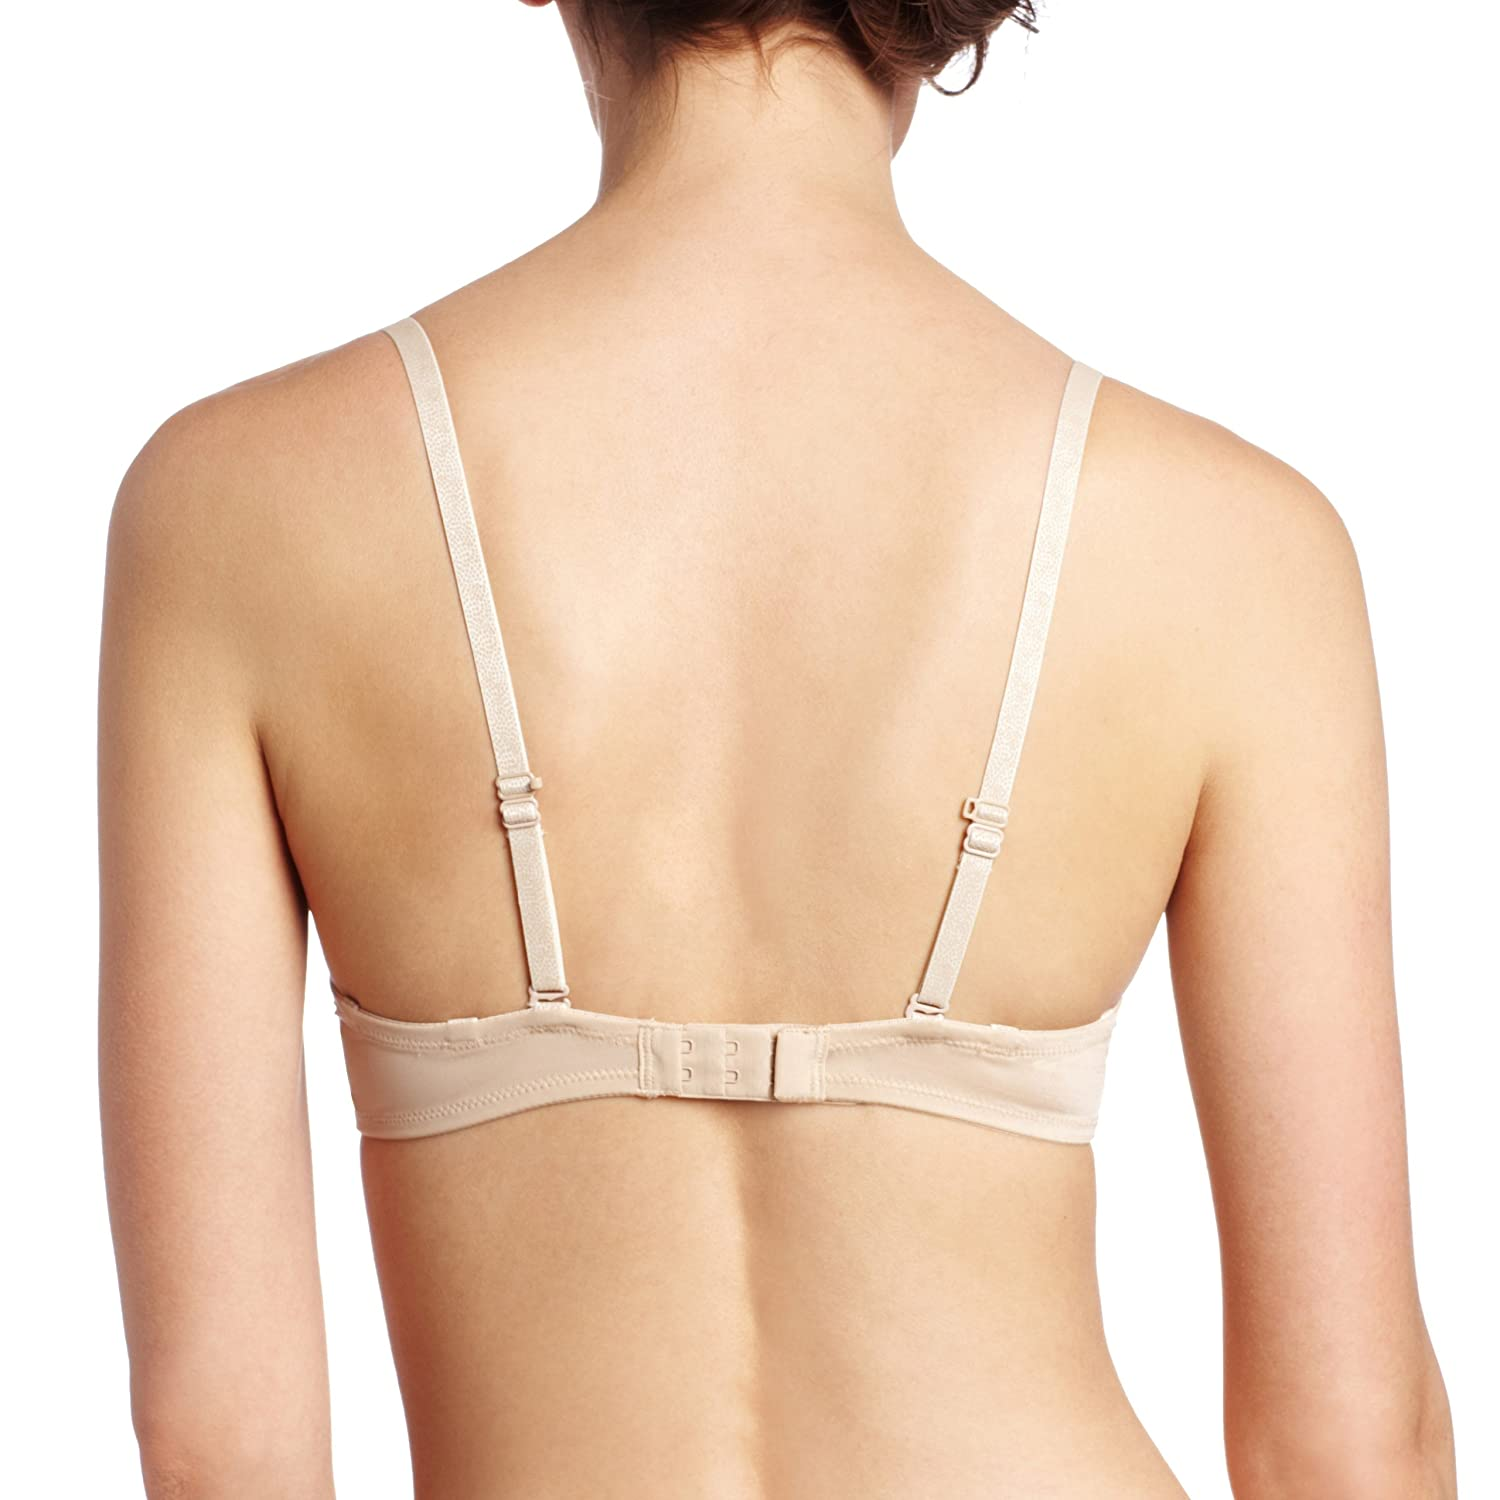 59c28b9f65f75 Lily of France Women s Extreme Options 62+ Ways to Wow Bra 2175415   Amazon.in  Clothing   Accessories